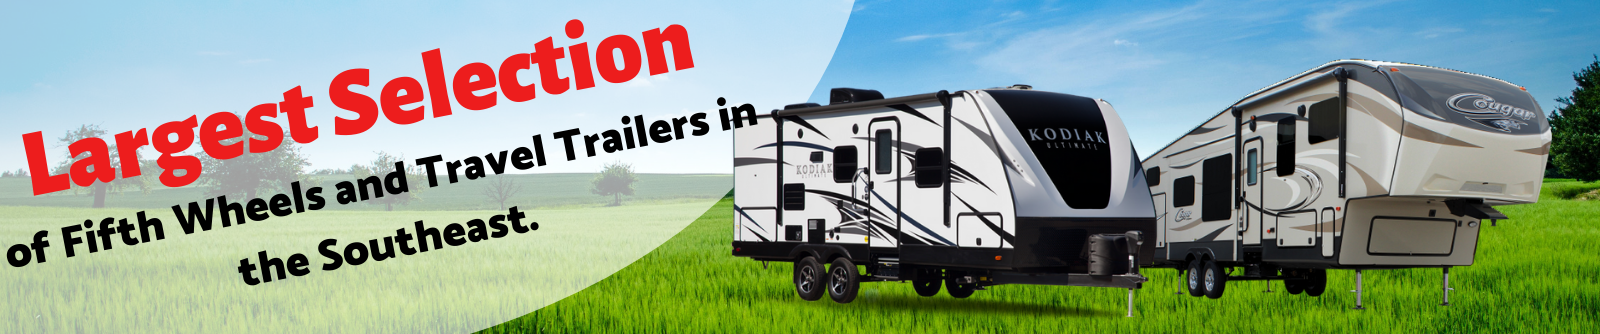 Largest Selection of Fifth Wheels and travel trailers in the southeast